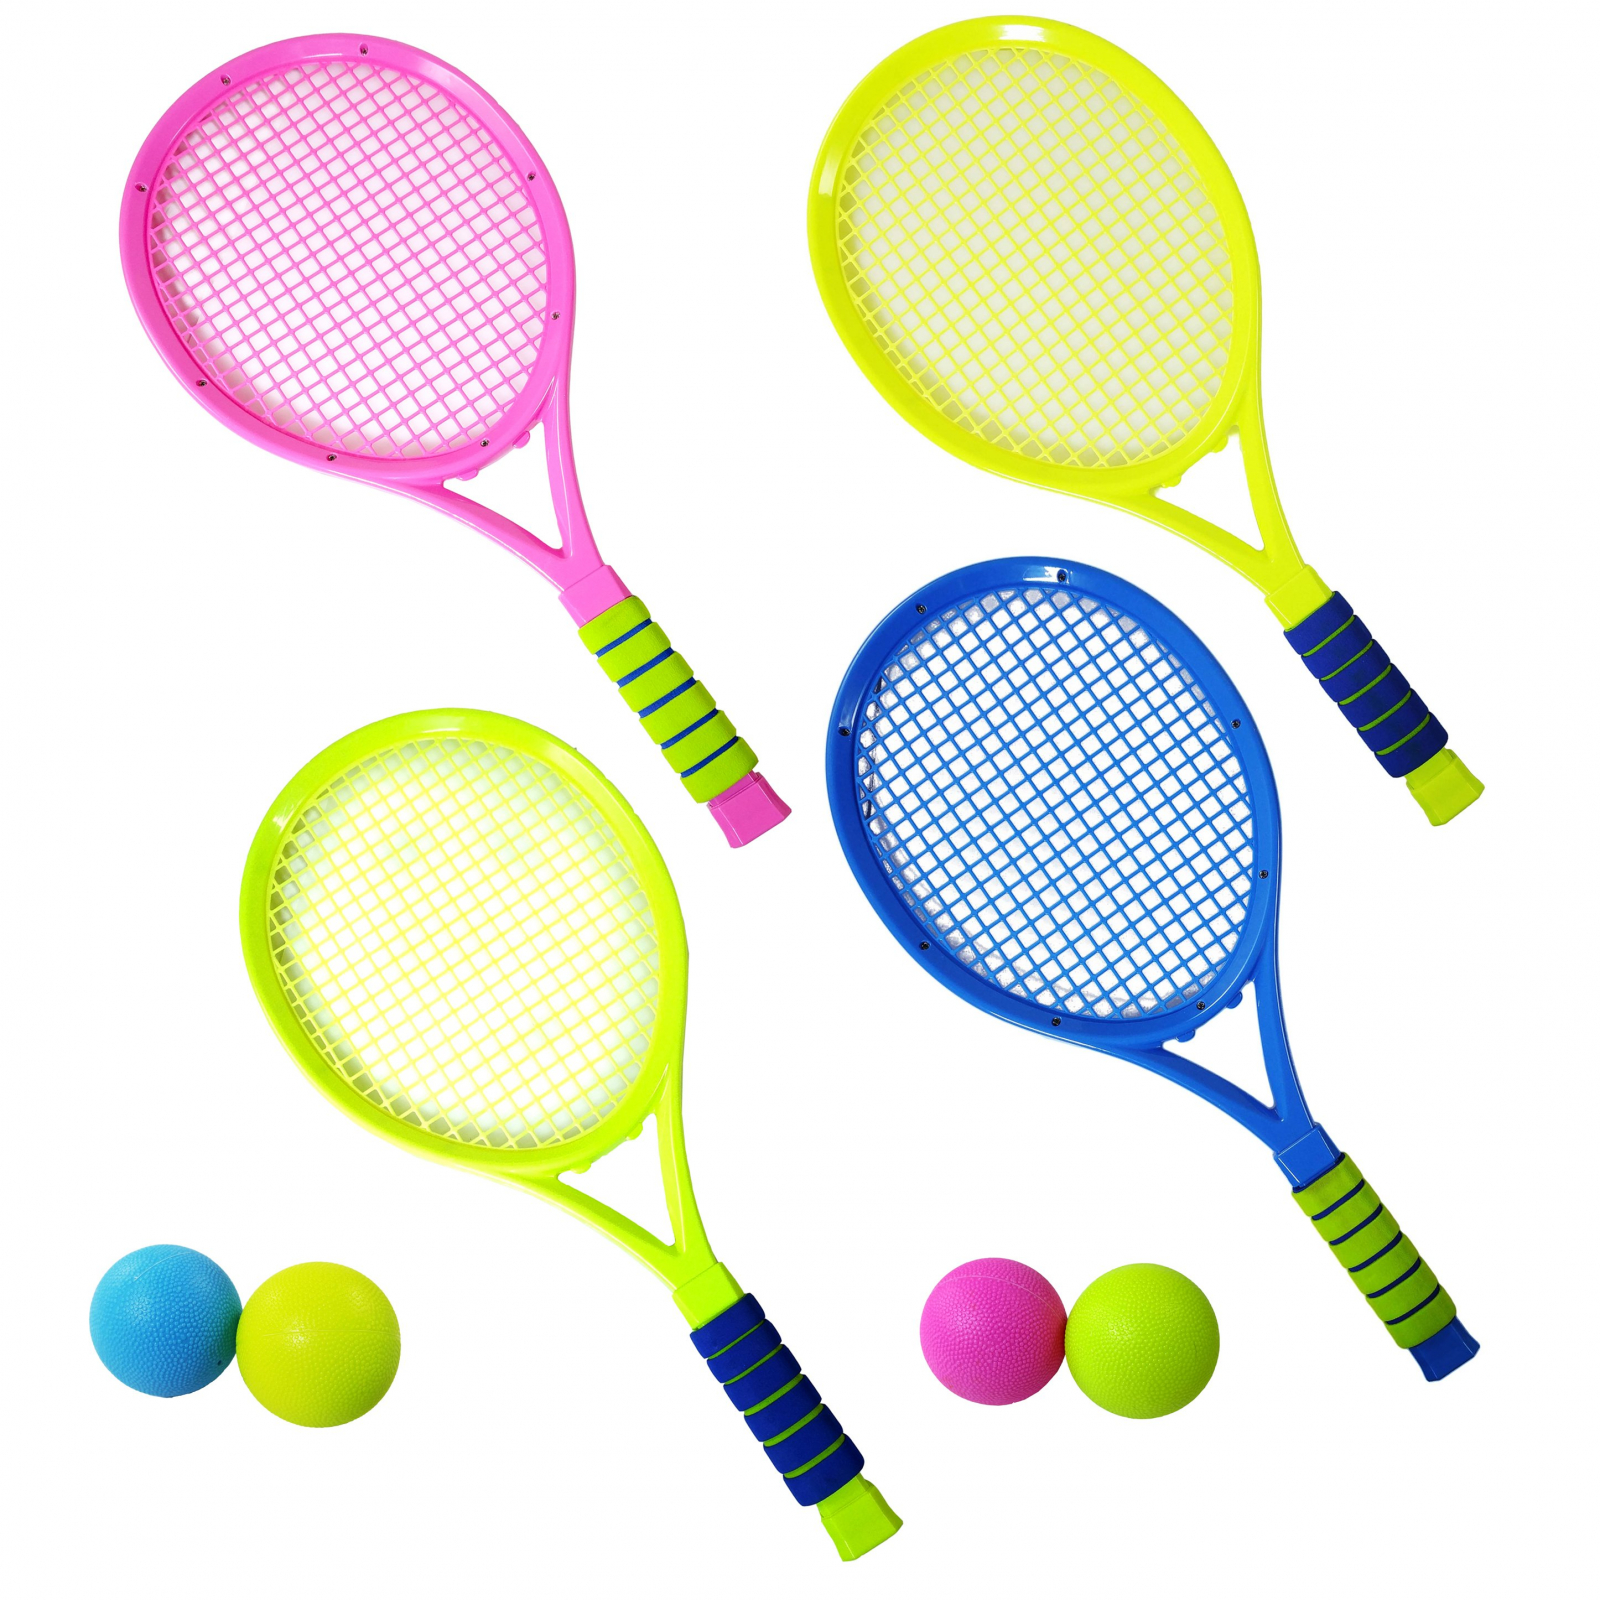 TychoTyke Kids Tennis Rackets Outdoor Exercise 4pc Set